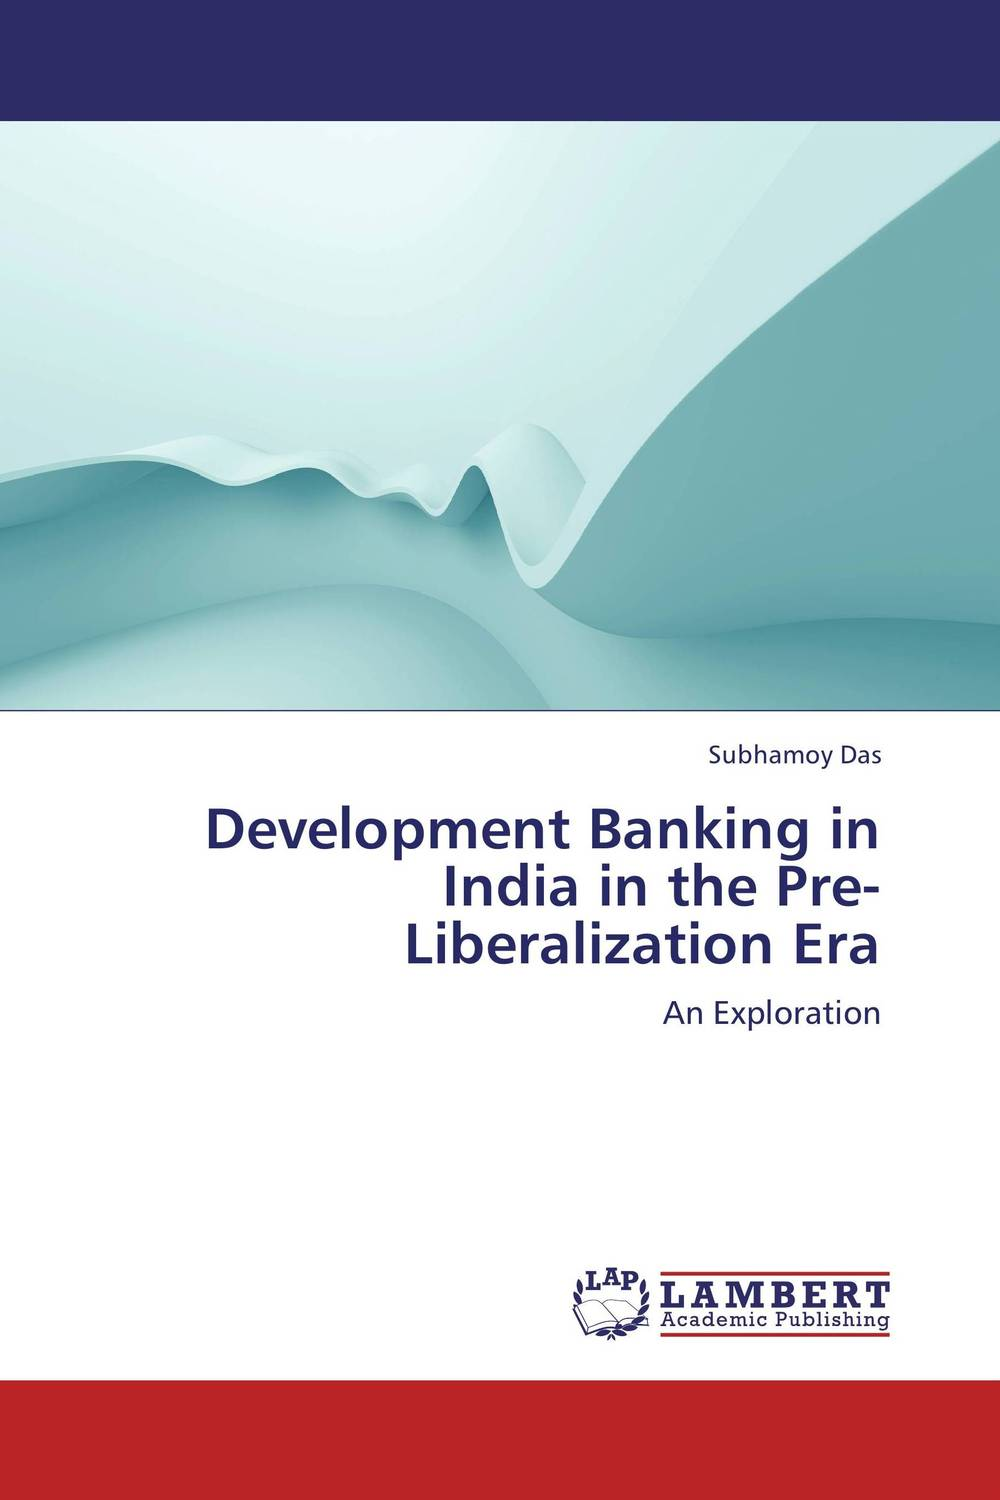 Development Banking in India in the Pre-Liberalization Era micro finance in india